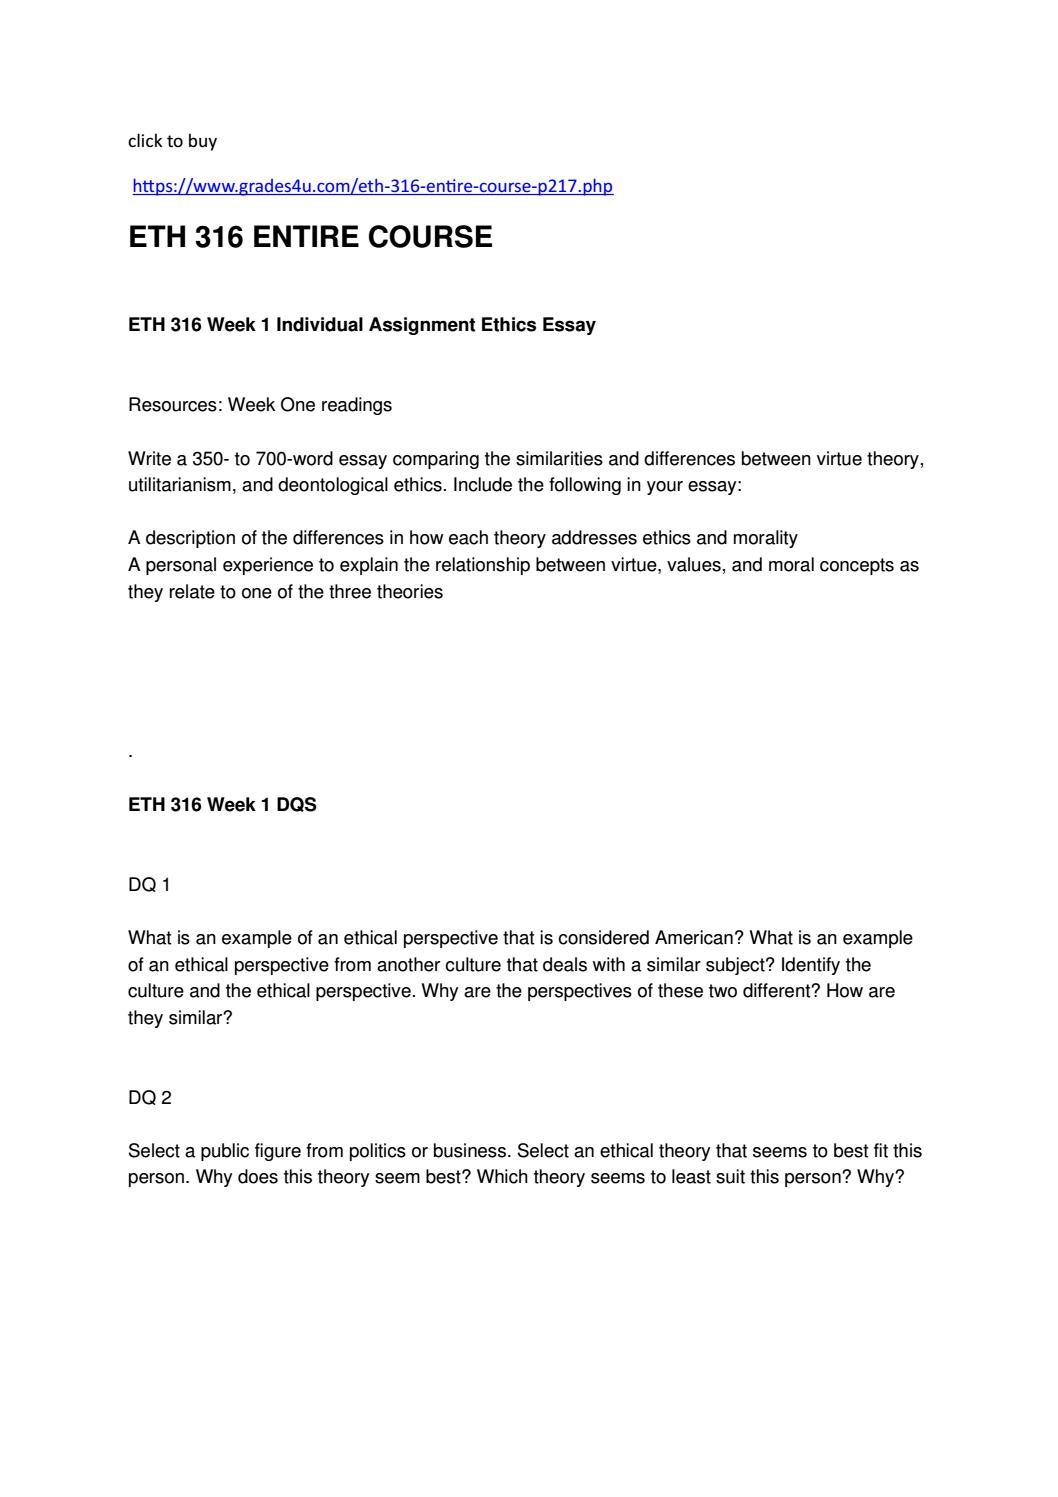 comparing the similarities and differences between virtue theory utilitarianism and deontological et I have to write a 300-700-word essay comparing the similarities and differences between virtue theory, utilitarianism, and deontological ethics include the following in your essay: a description of t.